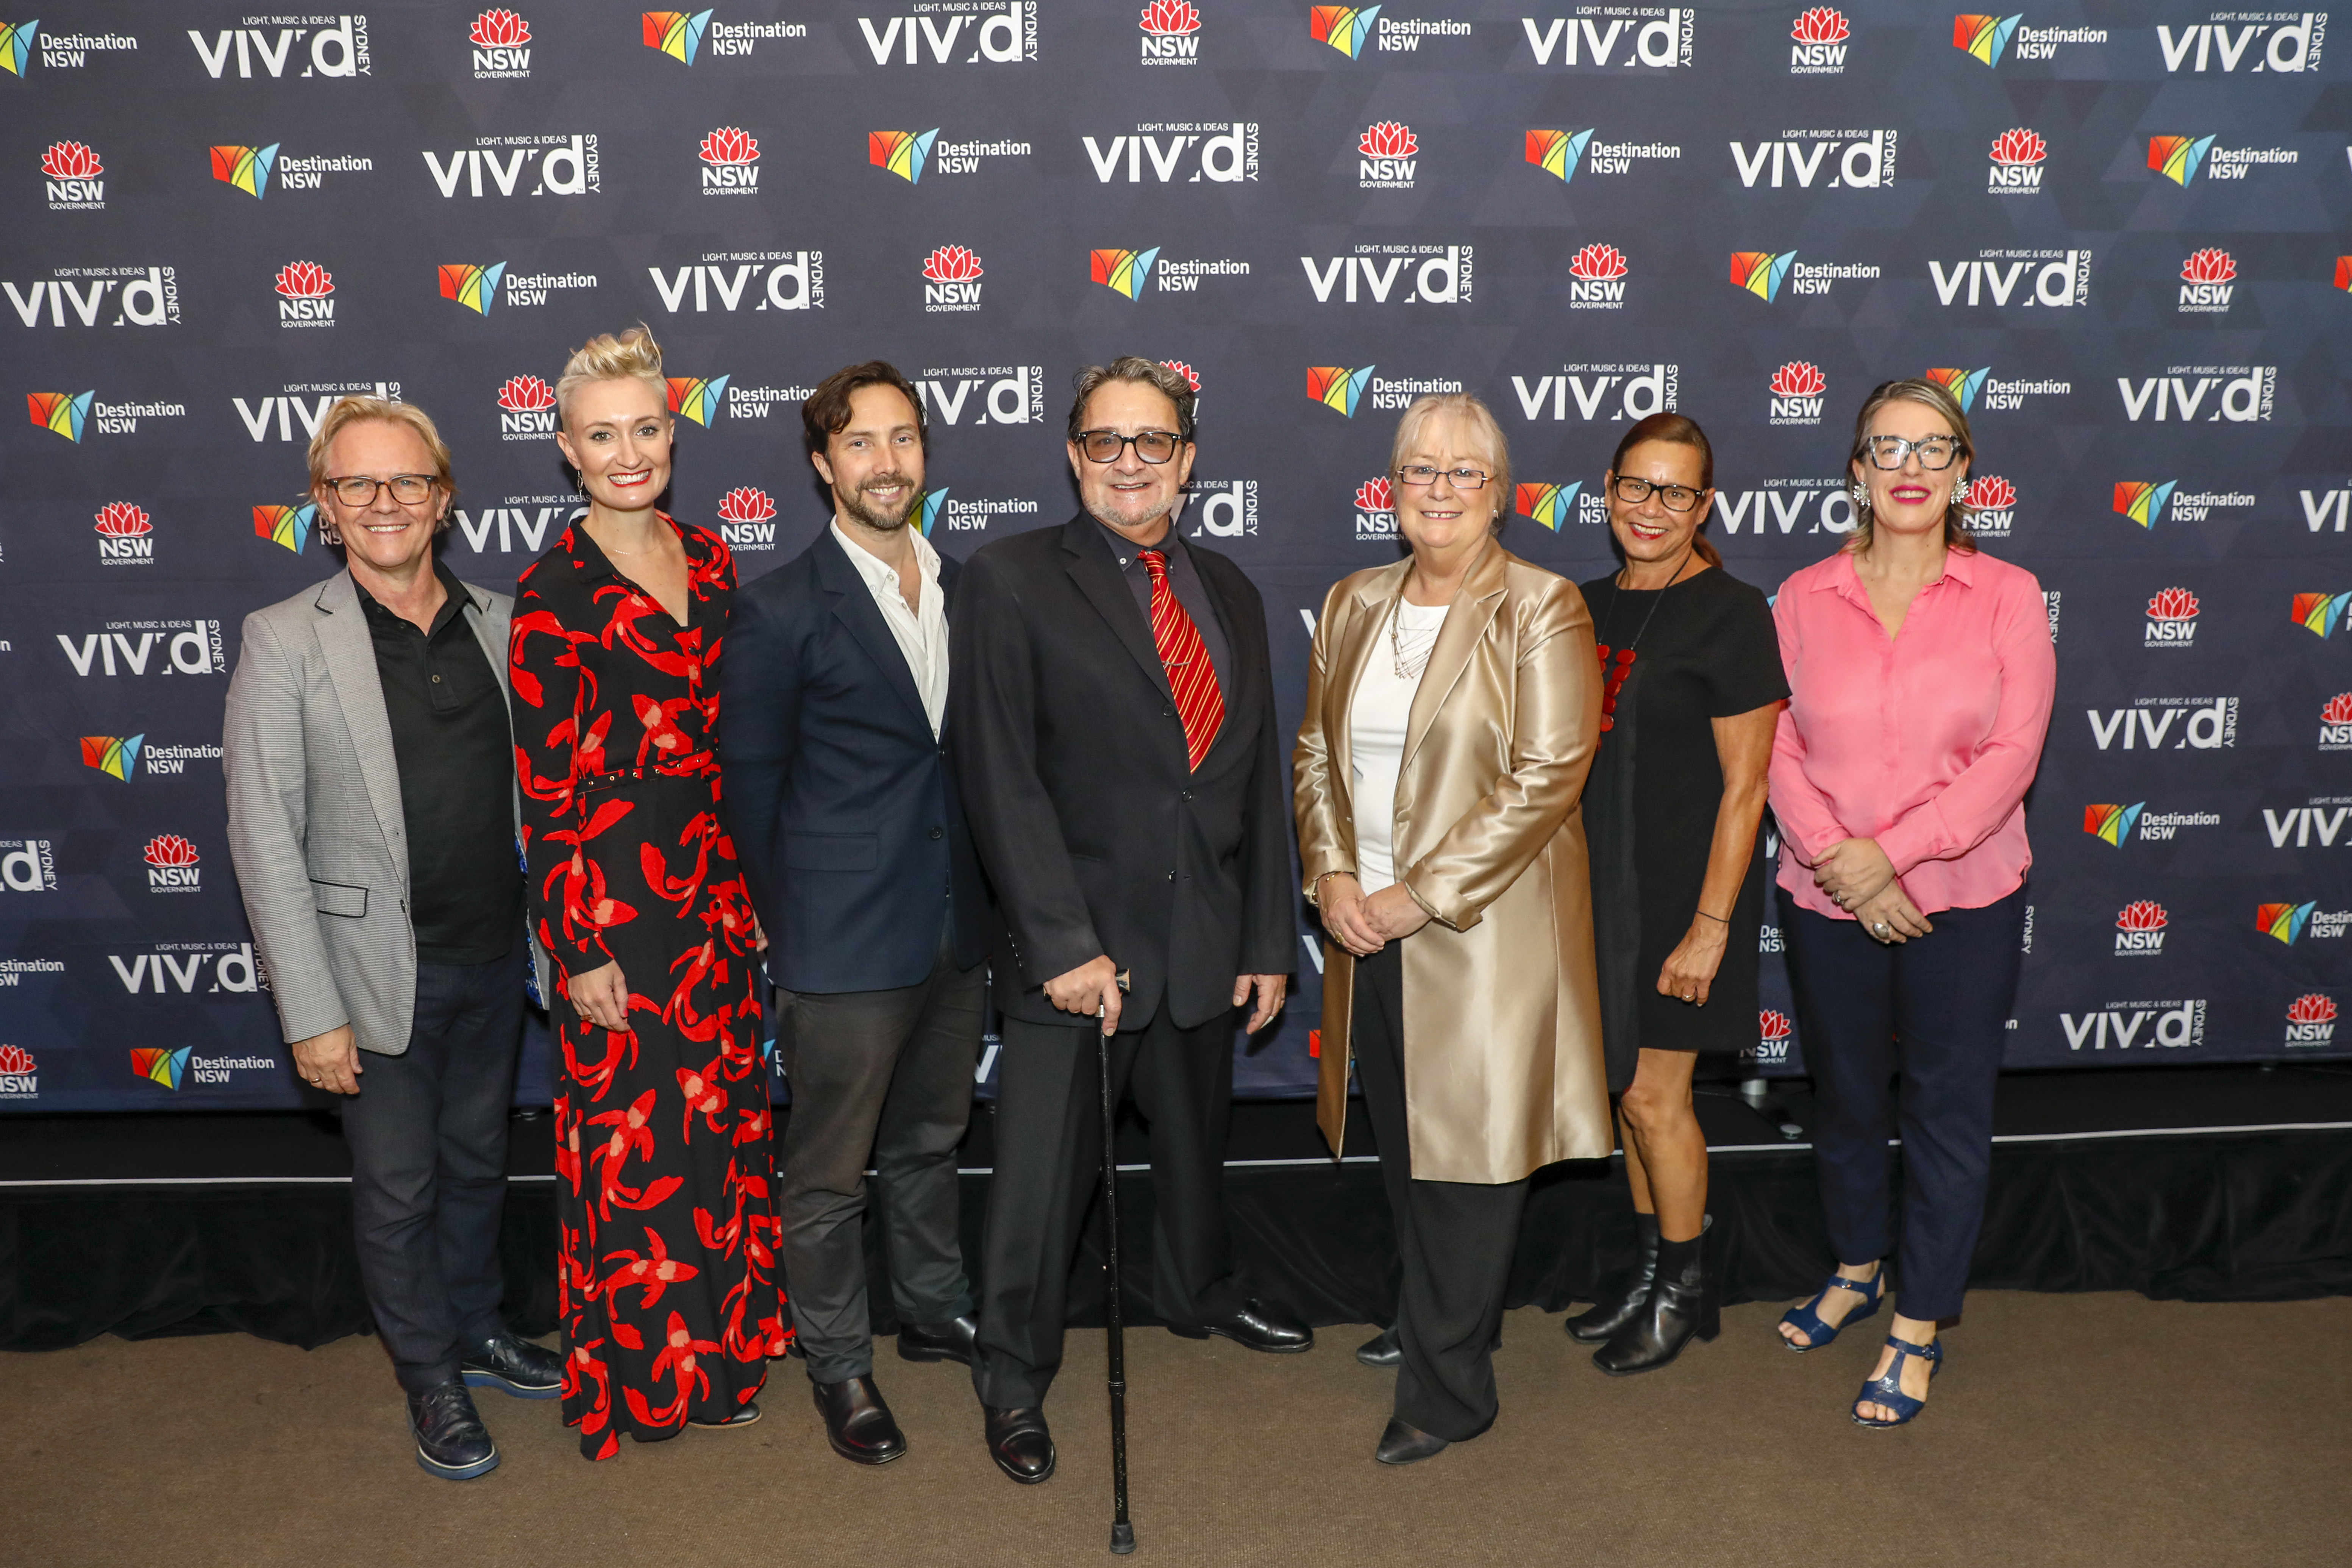 Vivid Sydney 2019 enters a new decade of innovation and